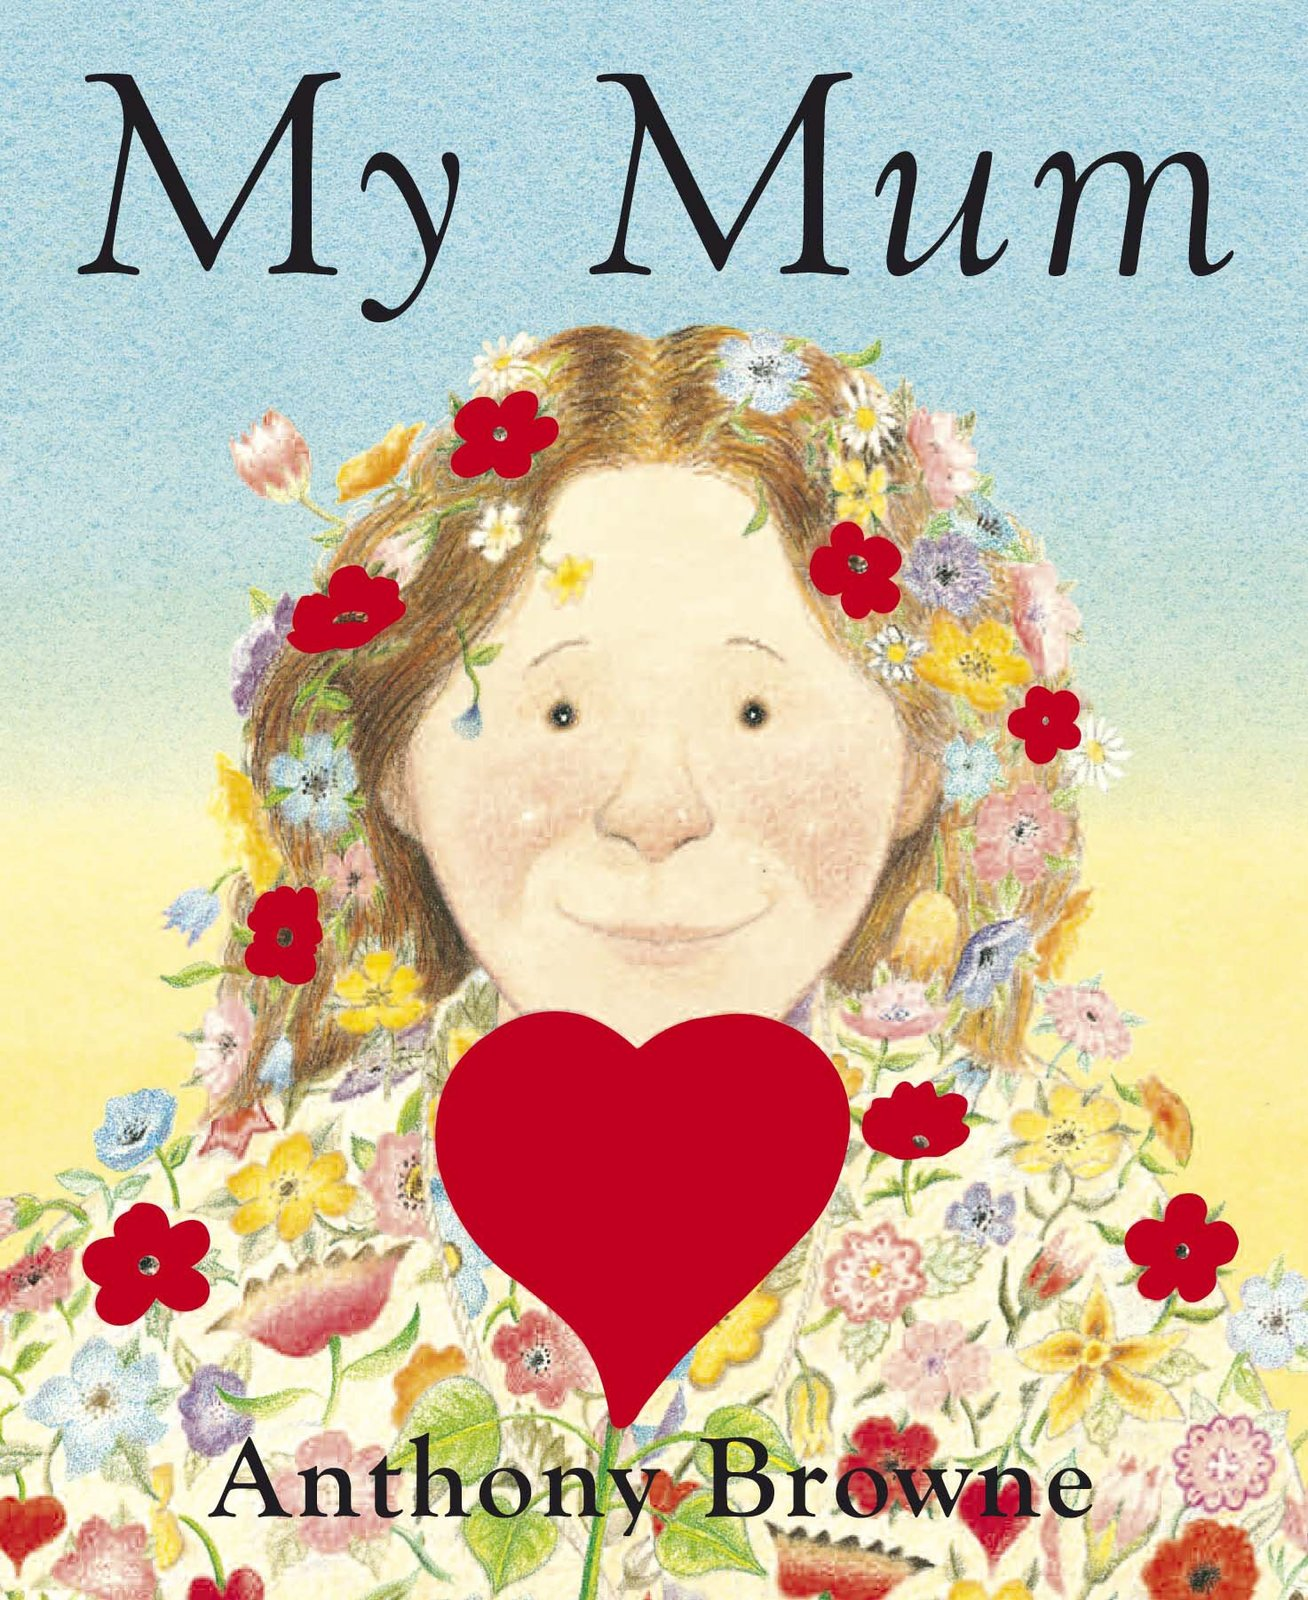 Buy my mum at mighty ape nz my mum by anthony browne image fandeluxe Choice Image